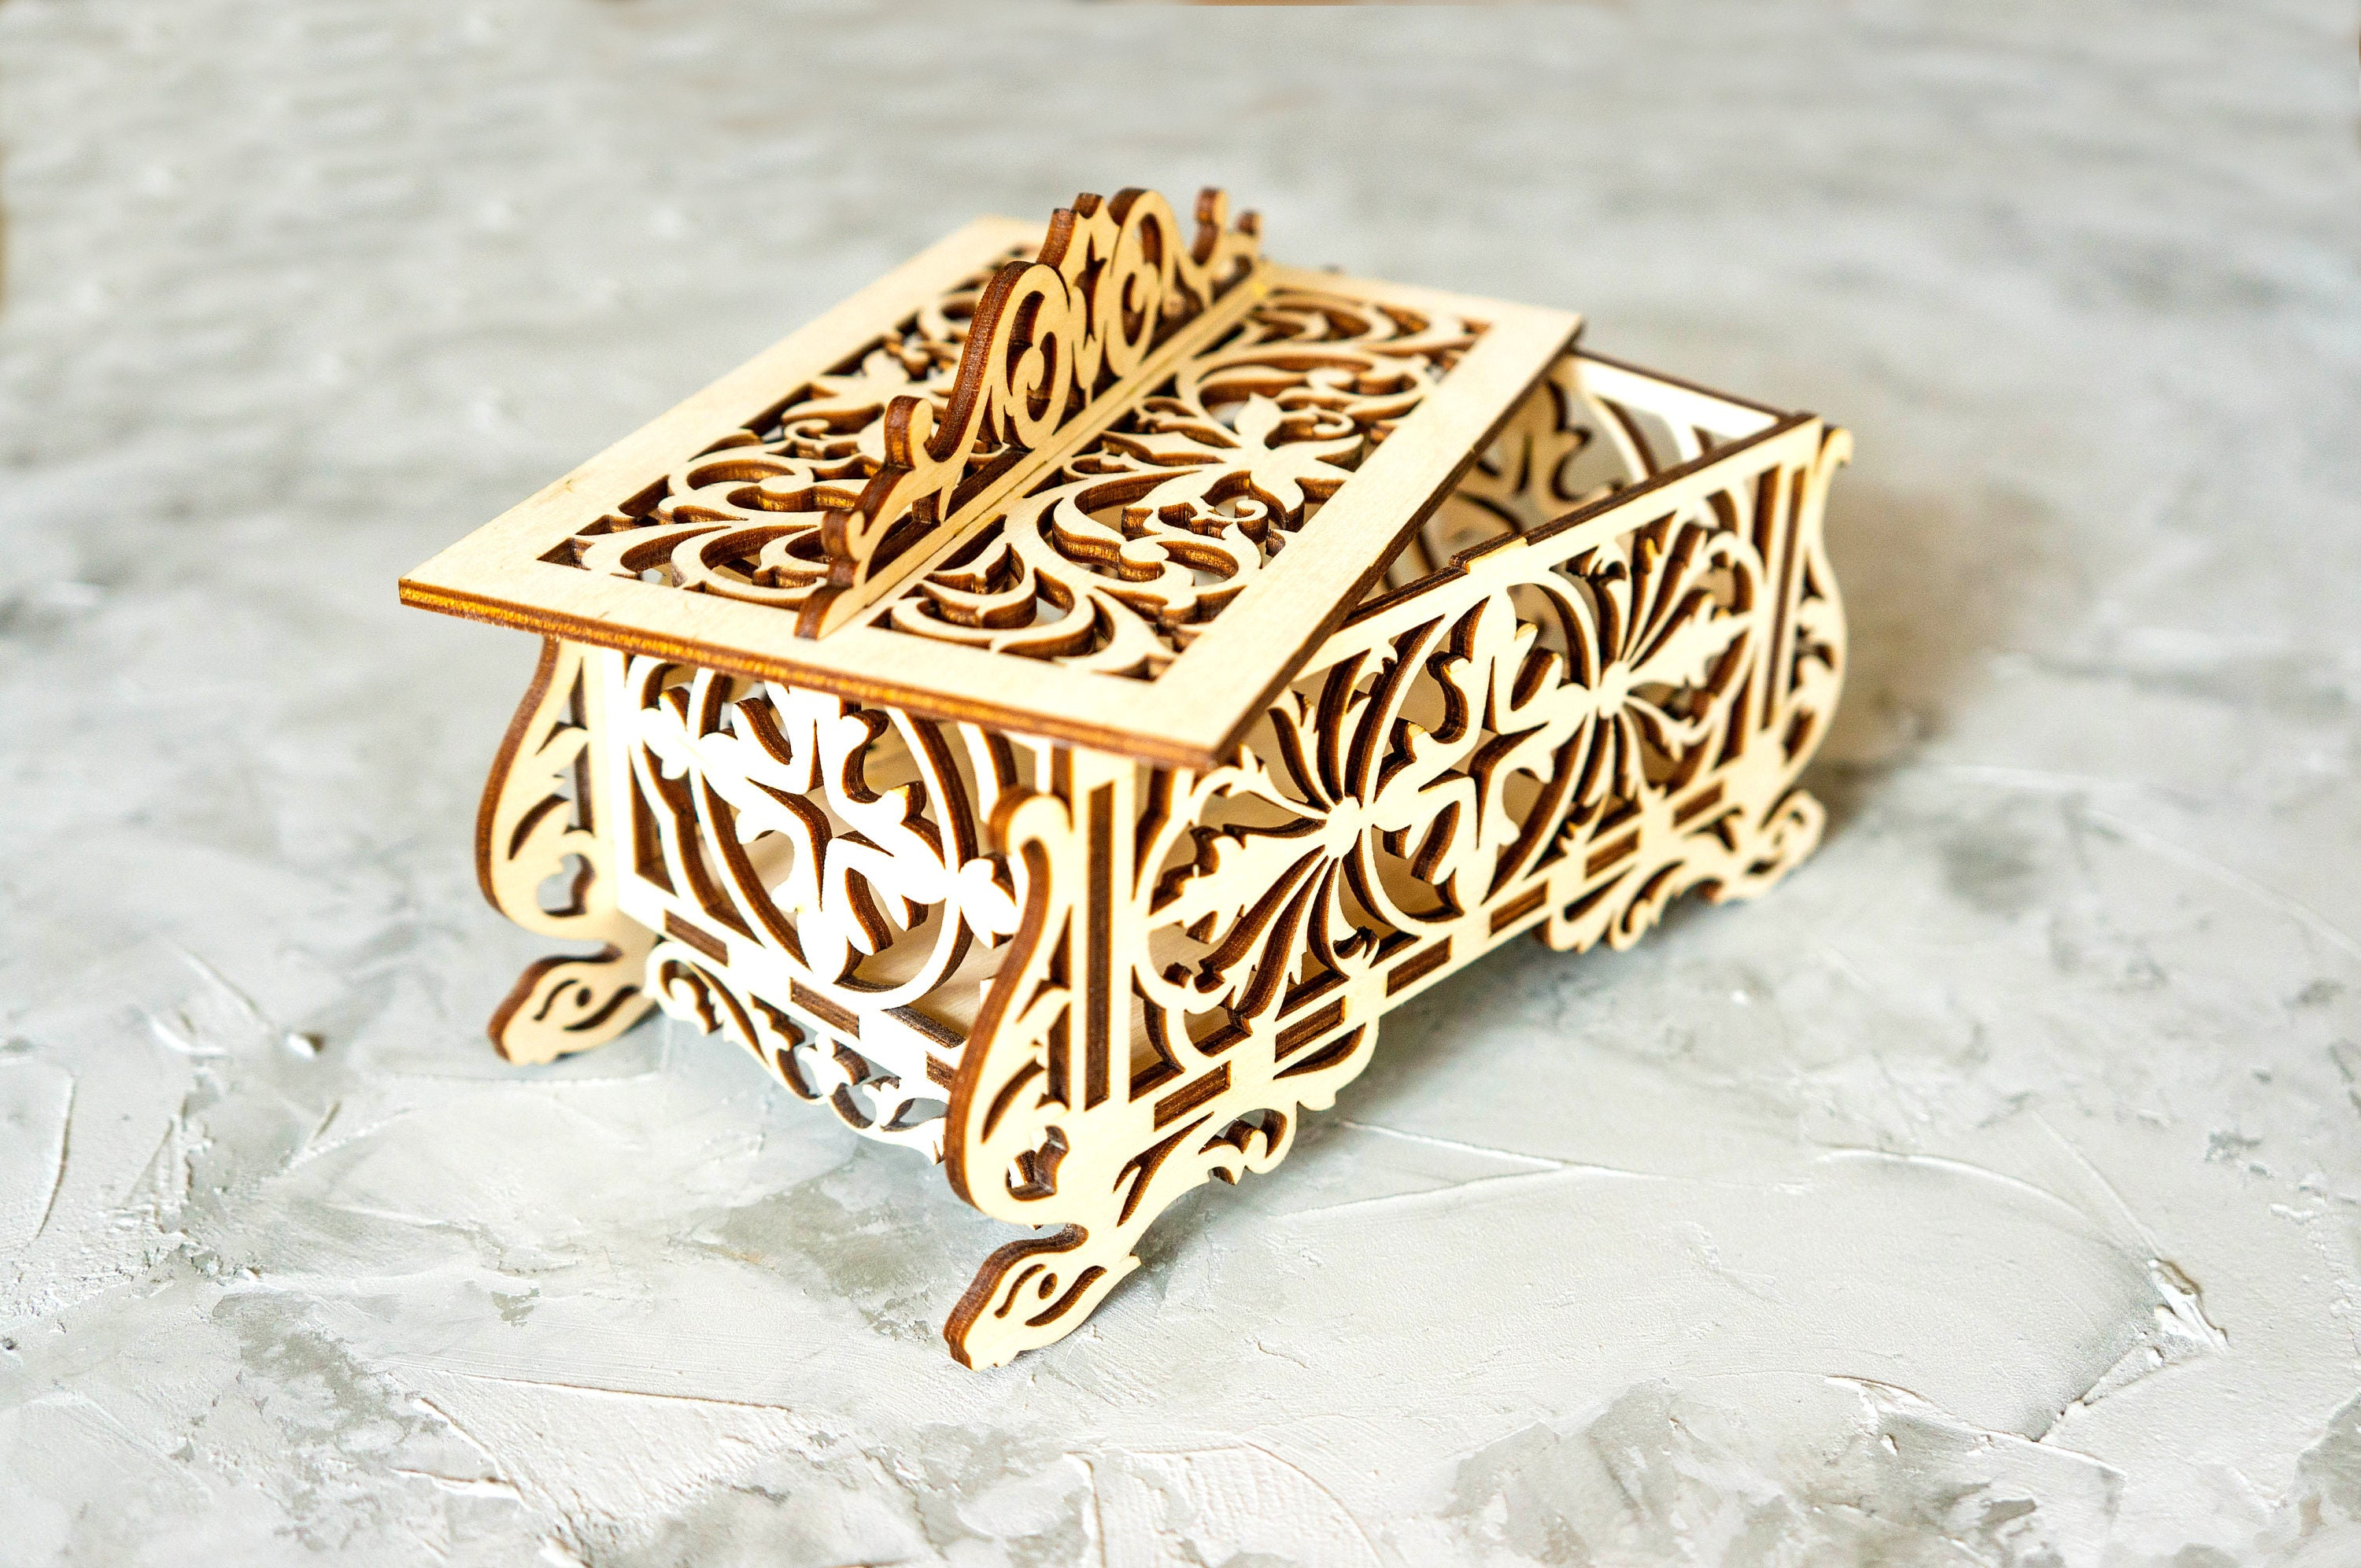 ornamented fine art jewelry box plans for laser cnc cutting wooden gift box  plywood box wood cut model svg pdf files for cnc laser cutting